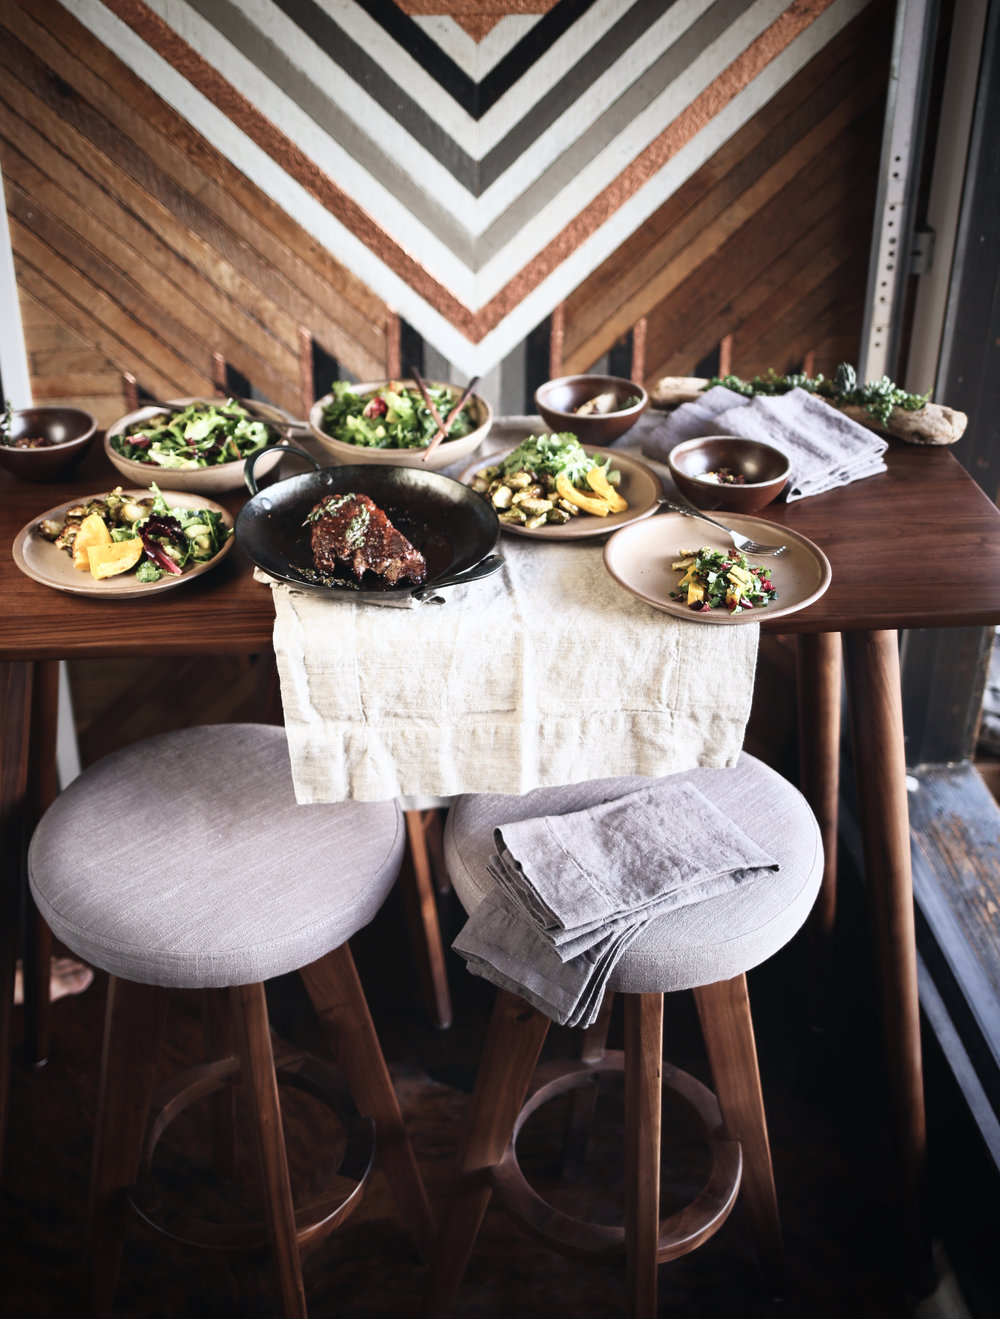 Table / stools : Article.  Table runner / napkins : Rough Linen.  Plates / Bowls : East Fork.  Pan : Blanc Creatives.